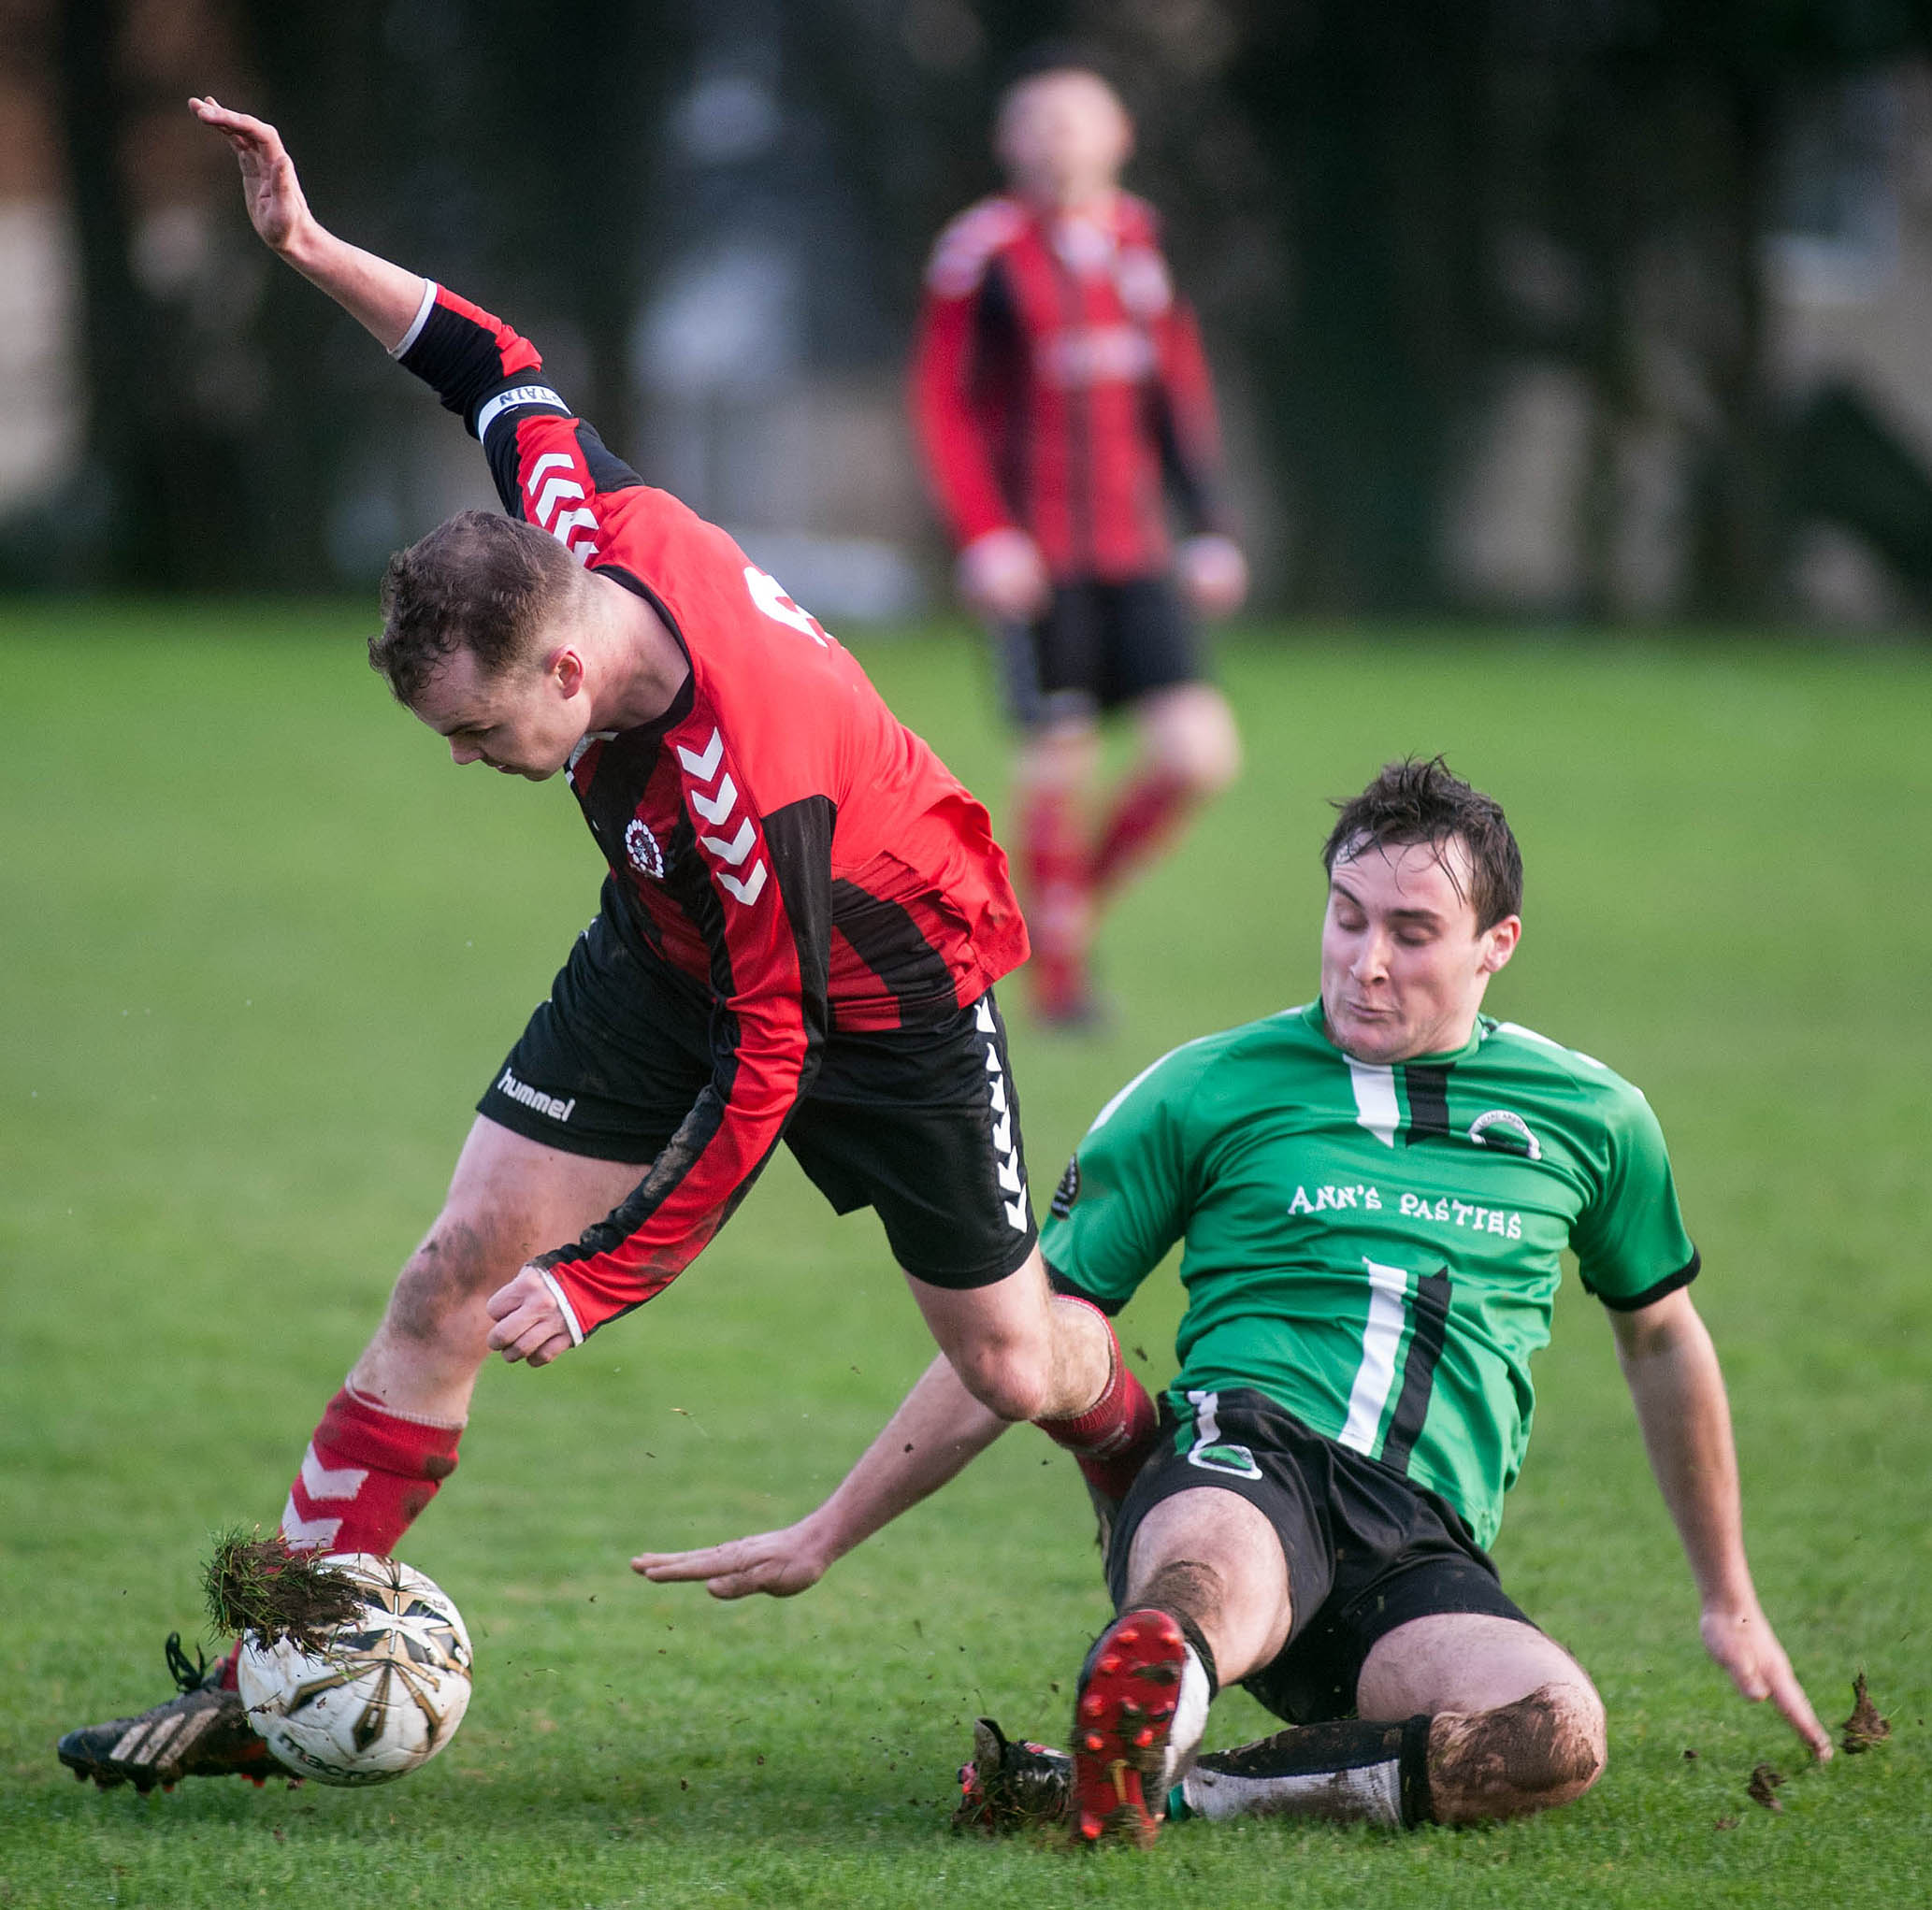 Penryn Athletic beat Helston Athletic to ensure an already tight Combination League title race got even tighter